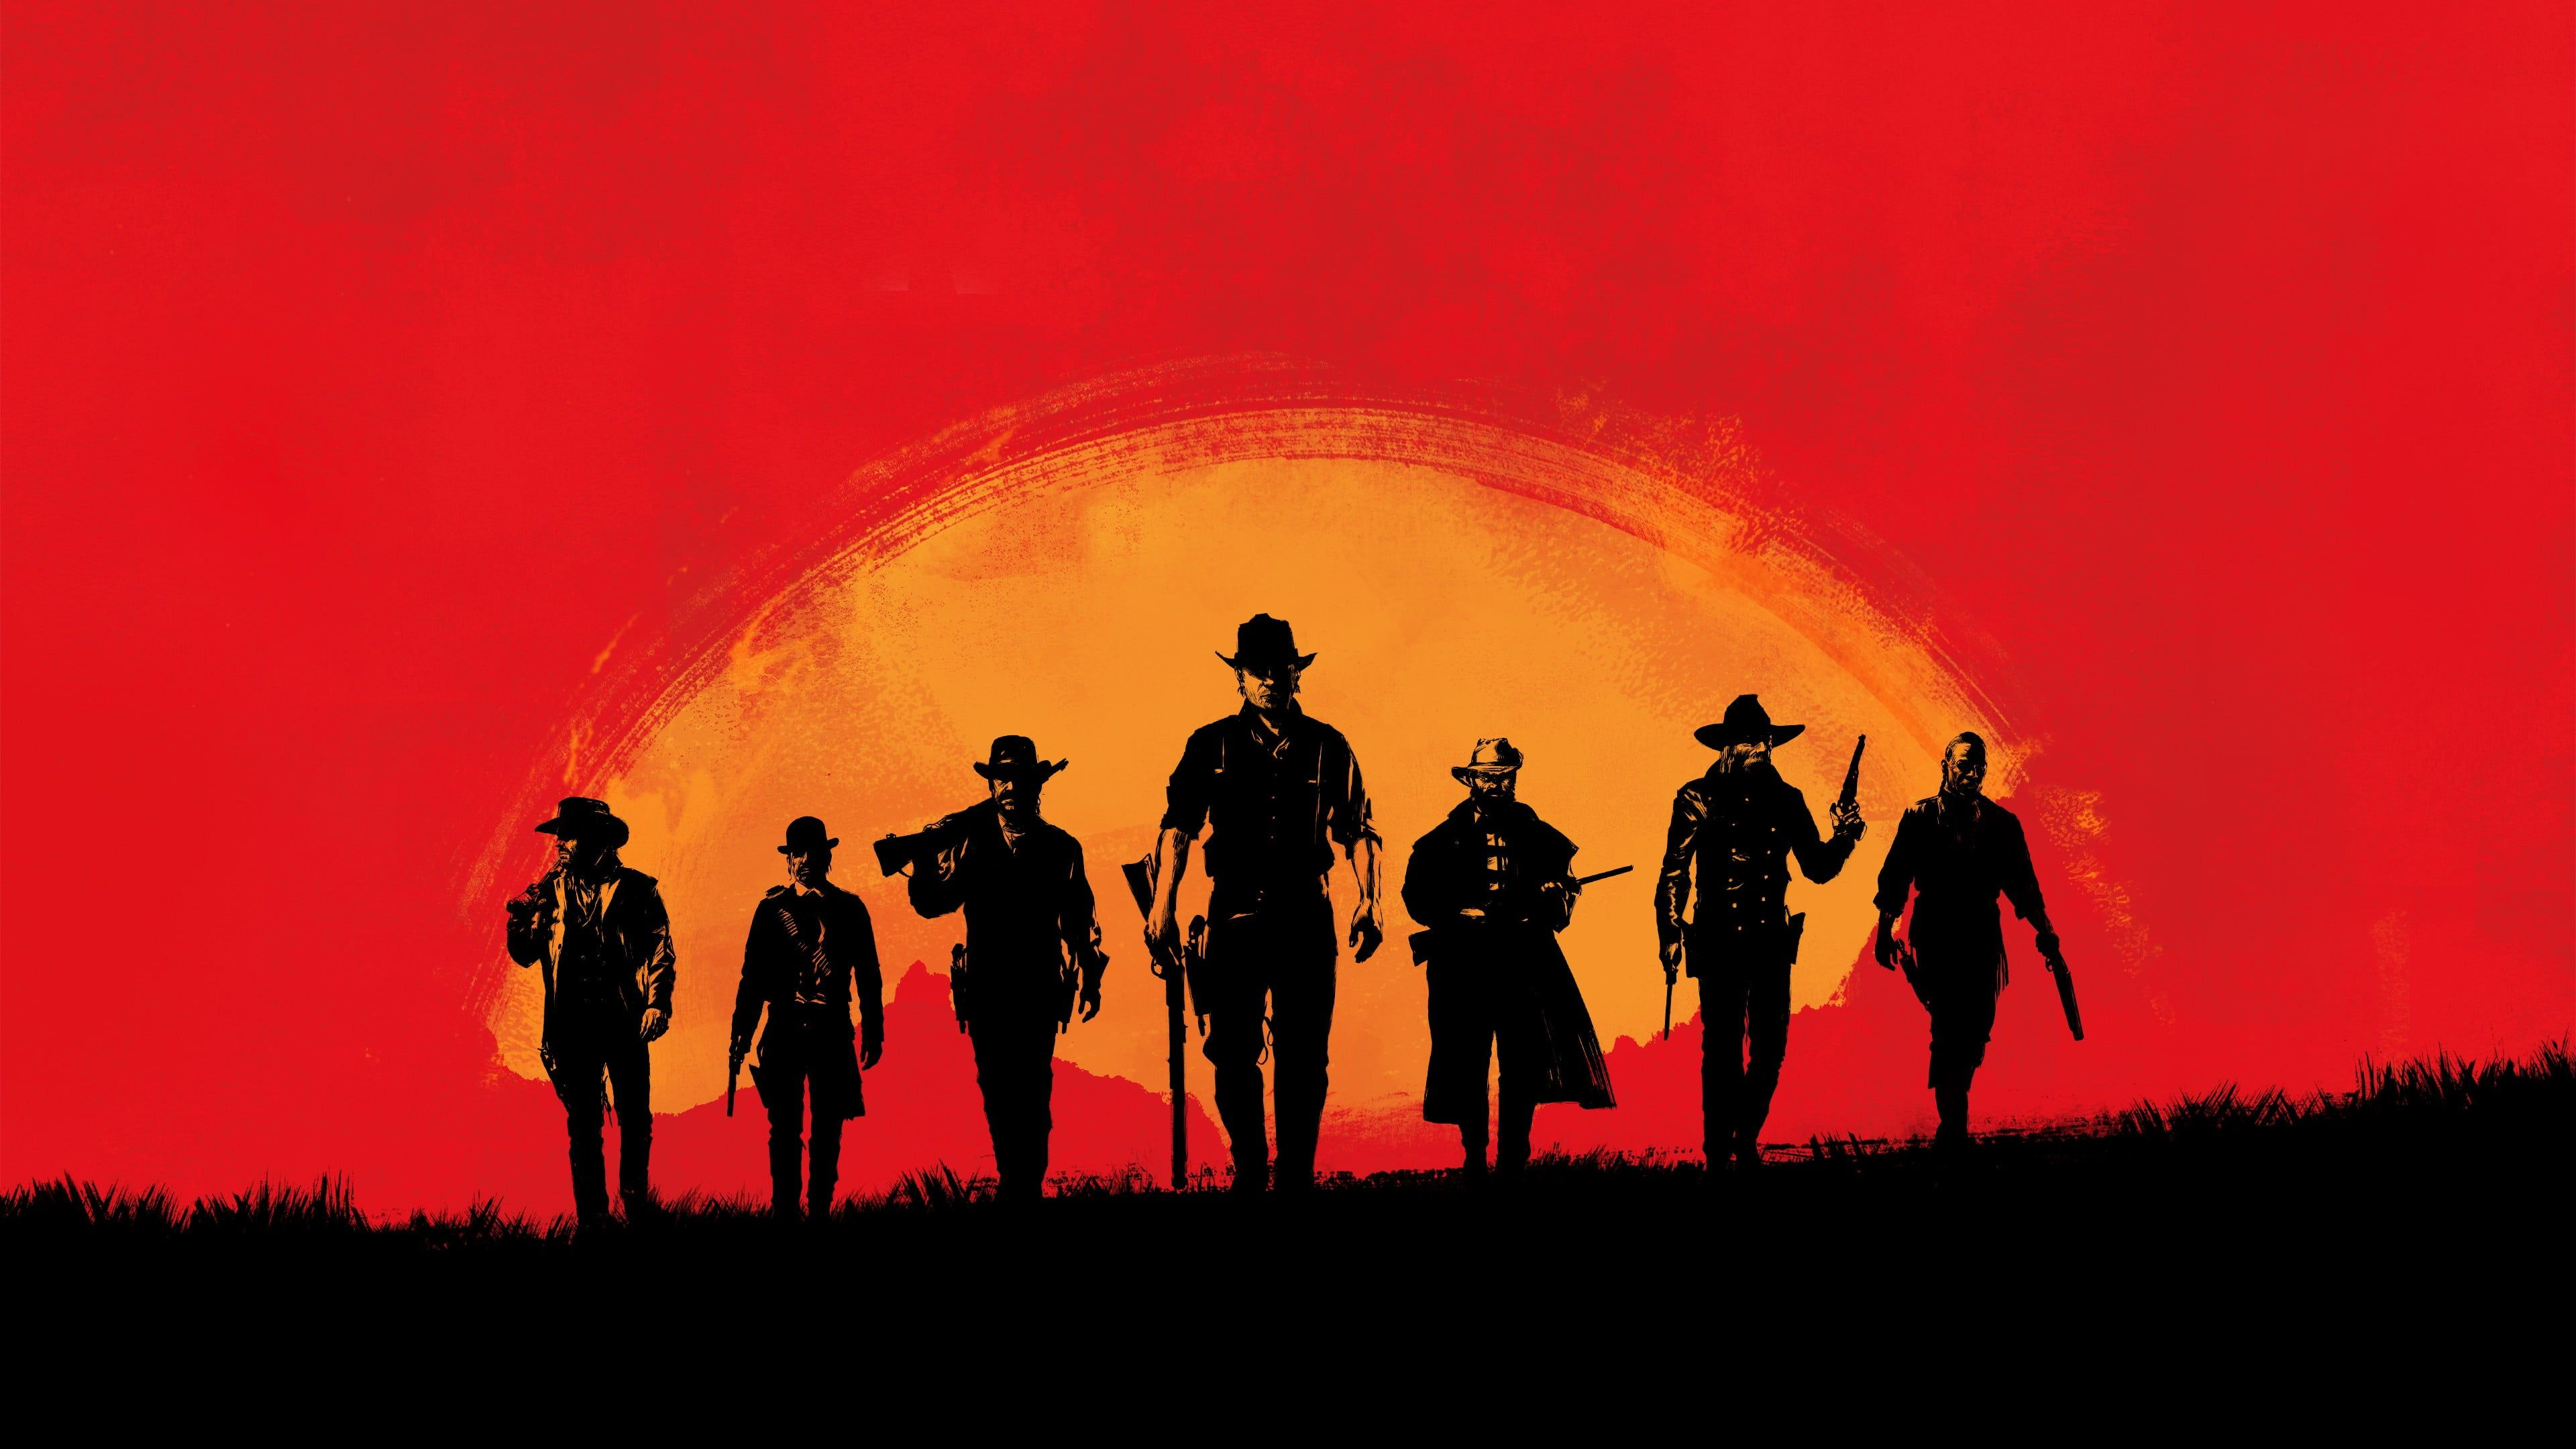 Yellow Red And Black Group Of Men Digital Wallpaper Red Dead Redemption In 2020 Red Dead Redemption Ii Red Dead Online Red Dead Redemption